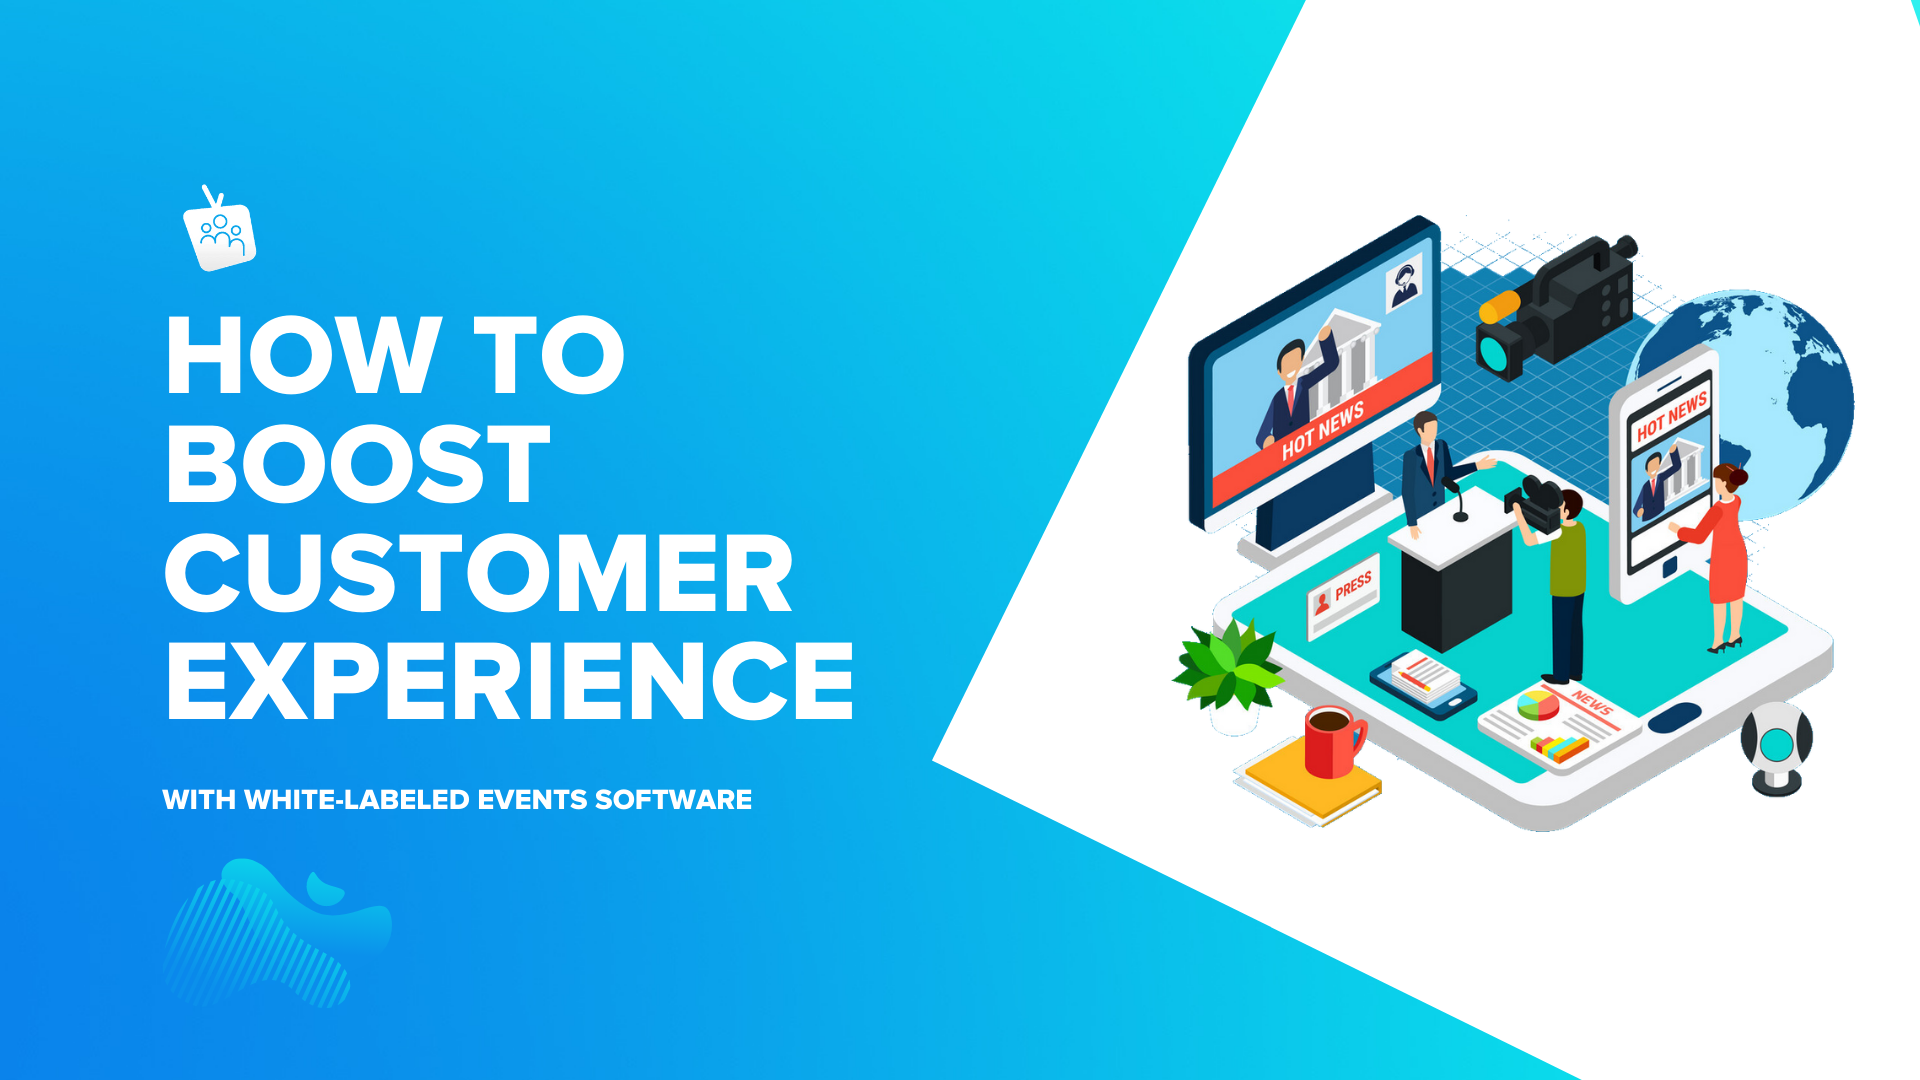 How to boost customer experience with white labeled events software